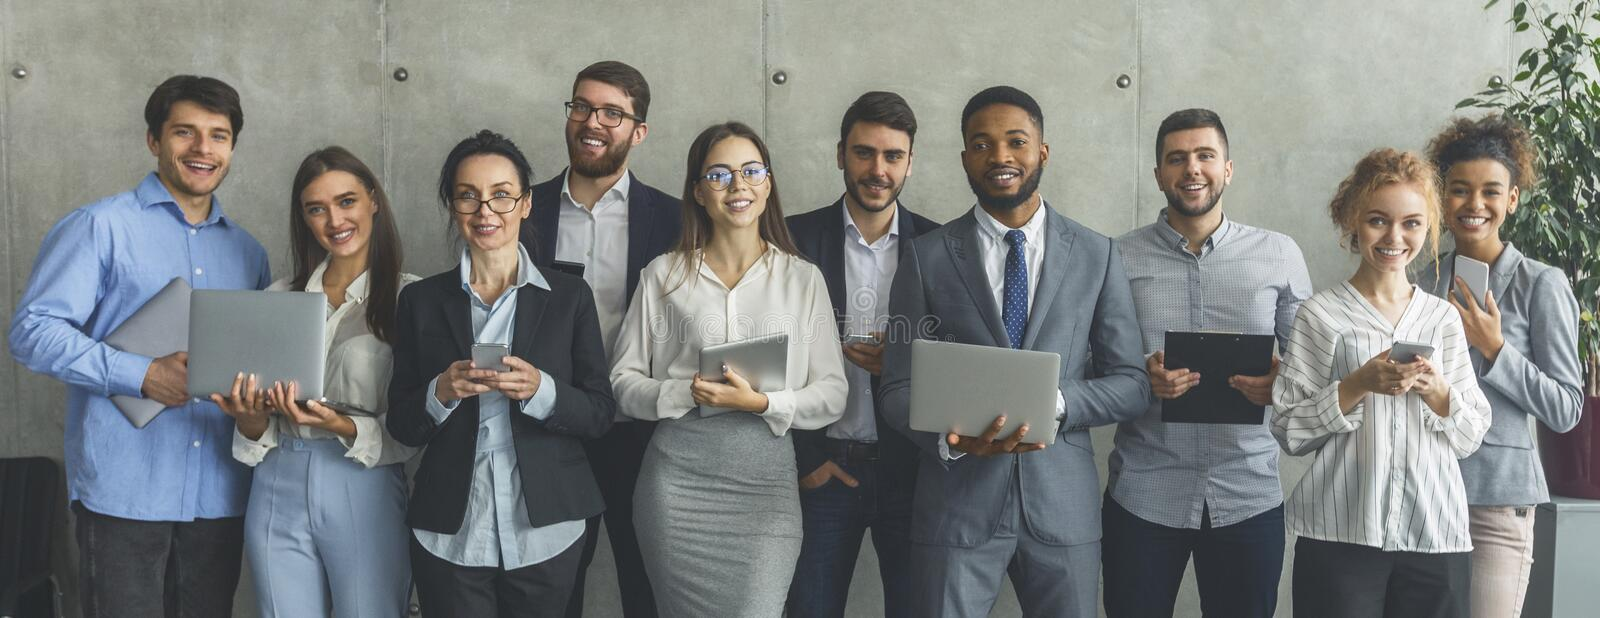 Young business people with different gadgets posing in office stock image